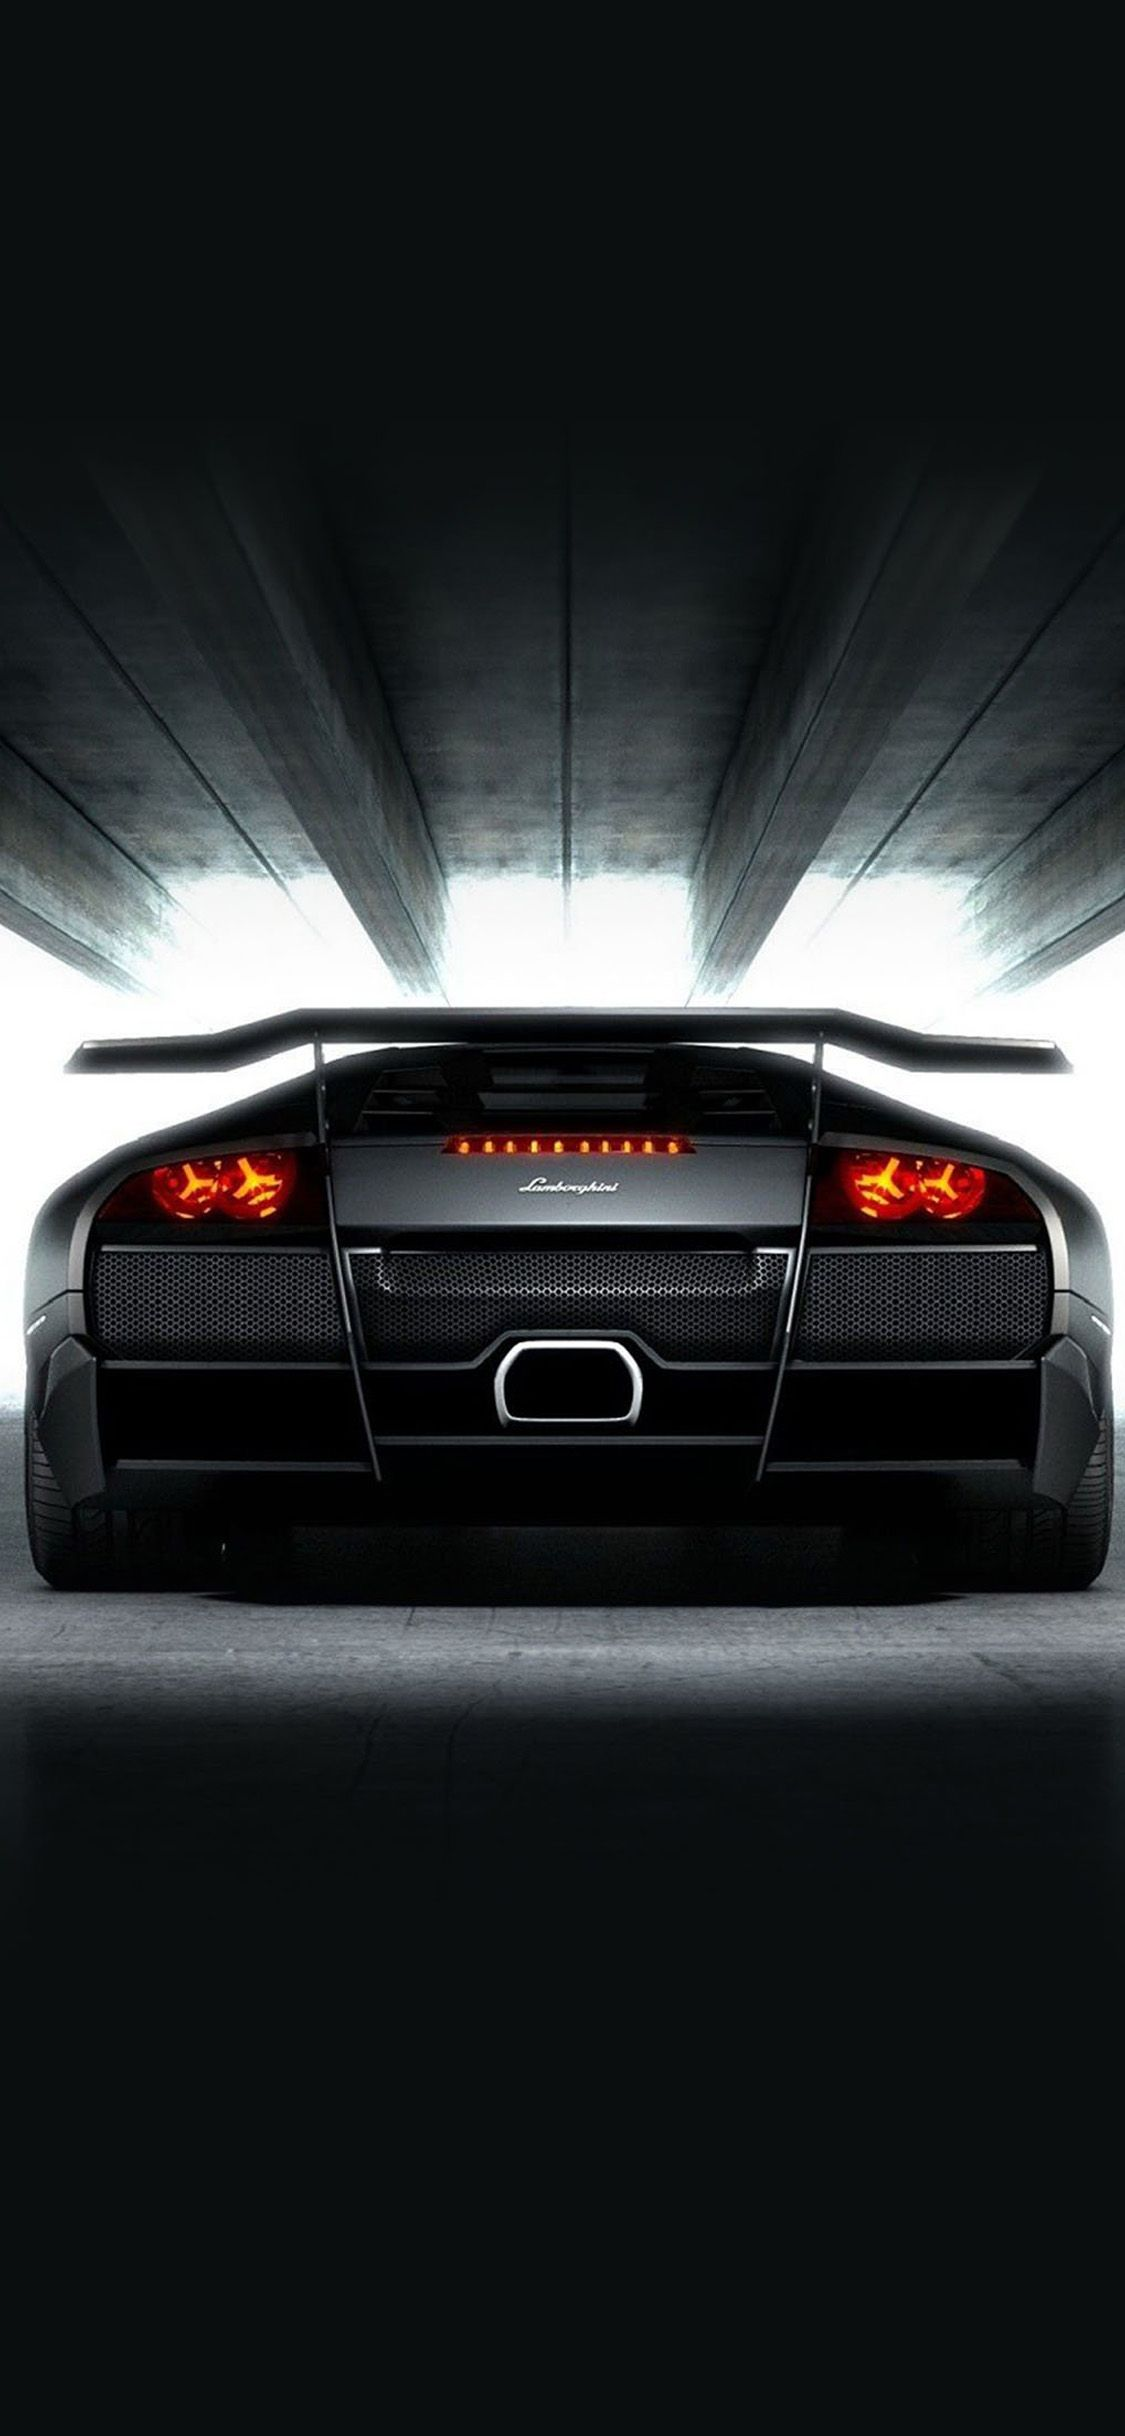 Lamborghini Iphone Wallpapers Top Free Lamborghini Iphone